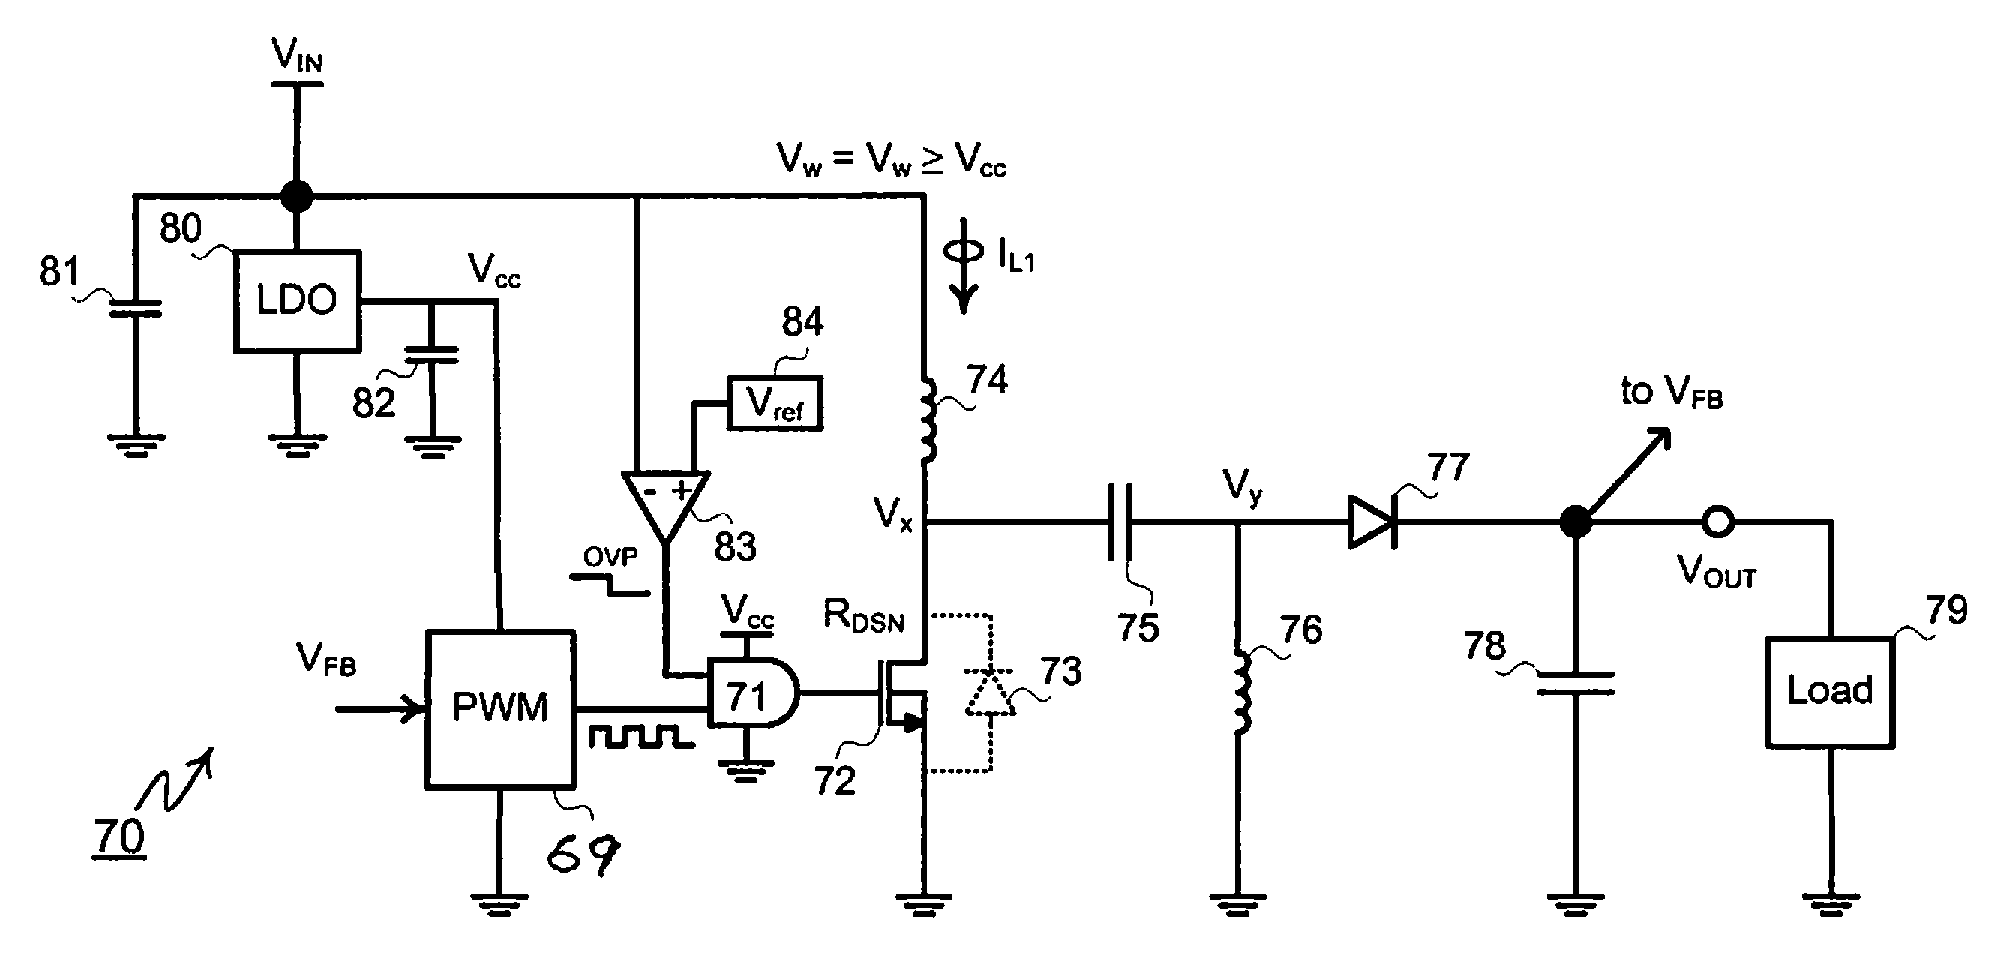 Analytics For Us Patent No 8704503 Single Ended Primary Inductor Mosfet Protection Circuit Value Vref The Comparator Output Causes Over Voltage To Disconnect Node Vw And Pwm Control From Input Supply